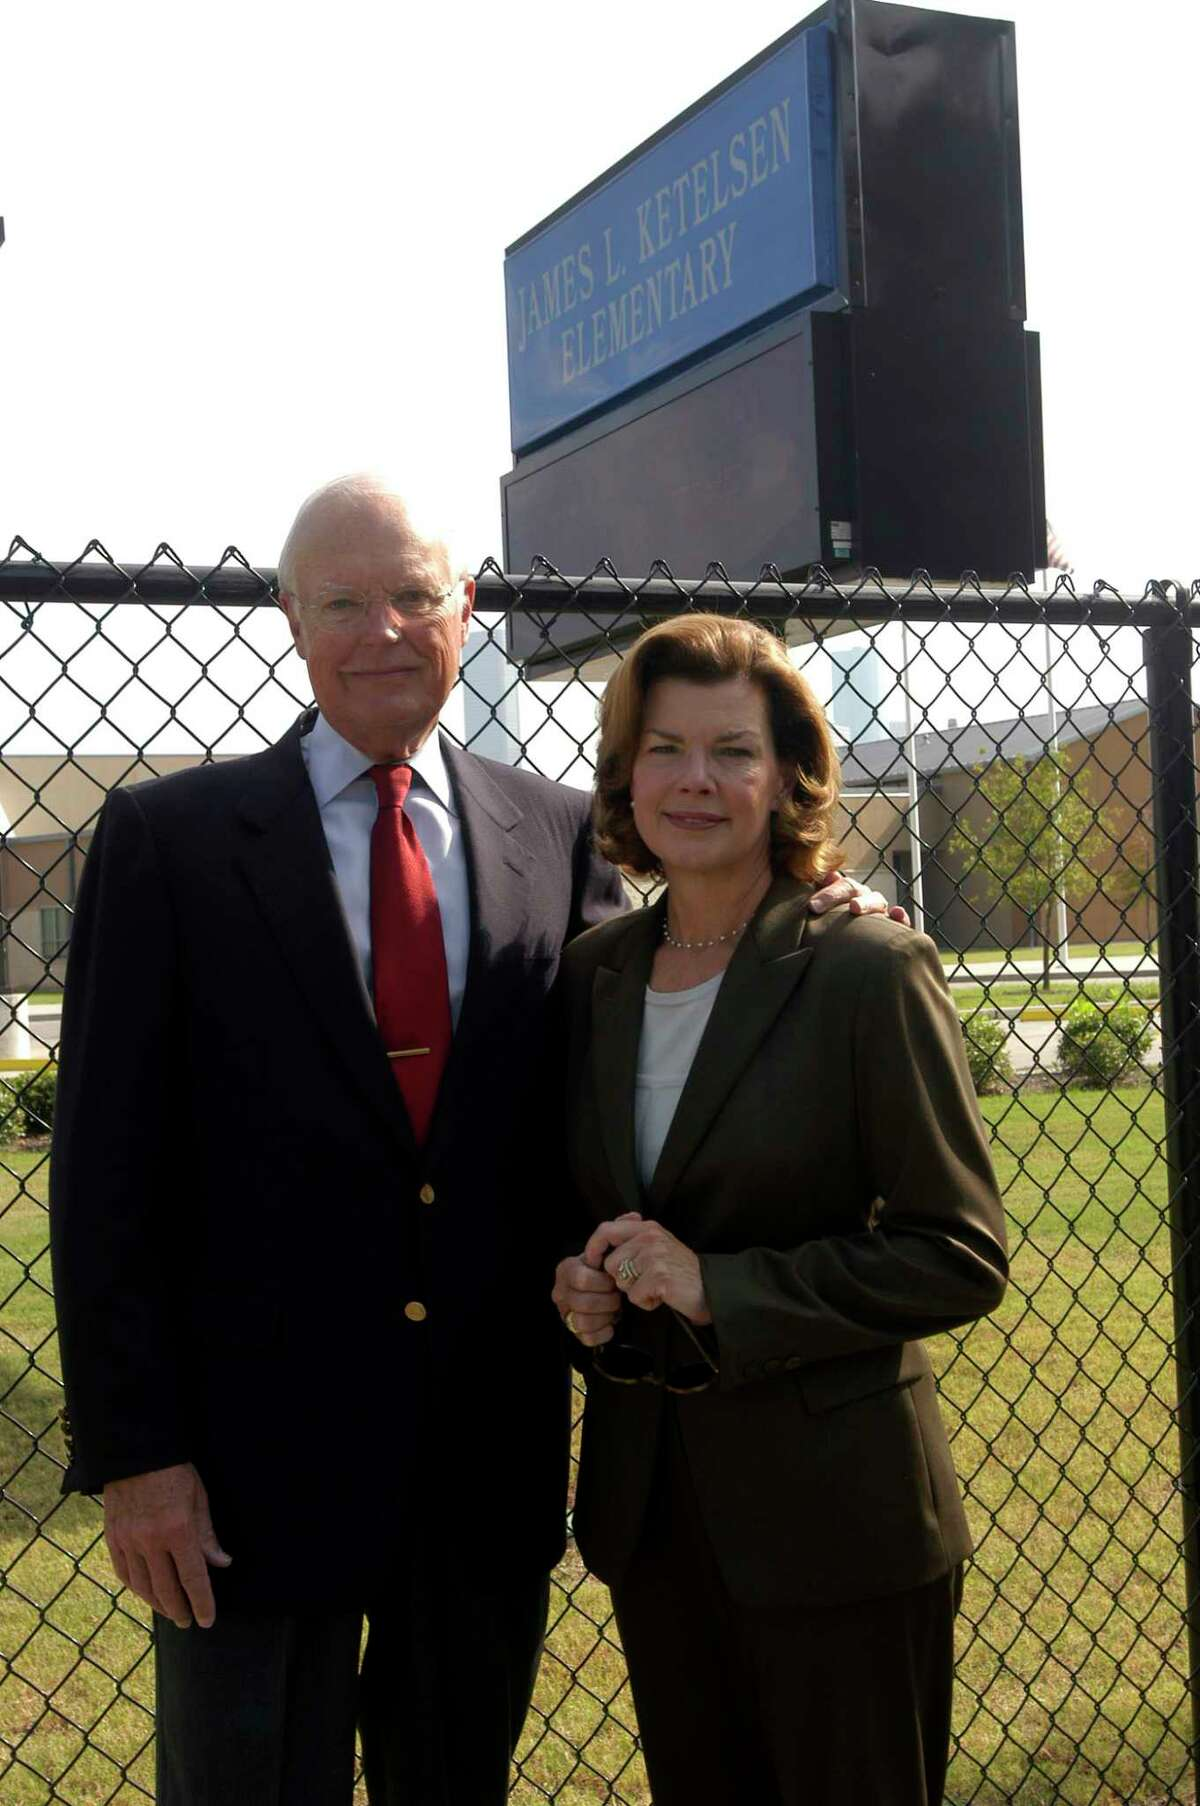 Jim and Kathryn Ketelsen pose in front of the James L. Ketelsen Elementary School sign, 09/25/04. (Photo by Kim Christensen) HOUCHRON CAPTION (10/07/2004) THIS WEEK Z8 Z11 COLORFRONT: Ketelsens work to send more students to college. HOUCHRON CAPTION (10/07/2004) THIS WEEK Z8 Z11: IN HIS NAME: Jim and Kathryn Ketelsen stand in front of the James L. Ketelsen Elementary School, named after Jim. HOUCHRON CAPTION (10/07/2004) THIS WEEK Z10 COLOR: IN HIS NAME: Jim and Kathryn Ketelsen stand in front of the James L. Ketelsen Elementary School, 600 Quitman